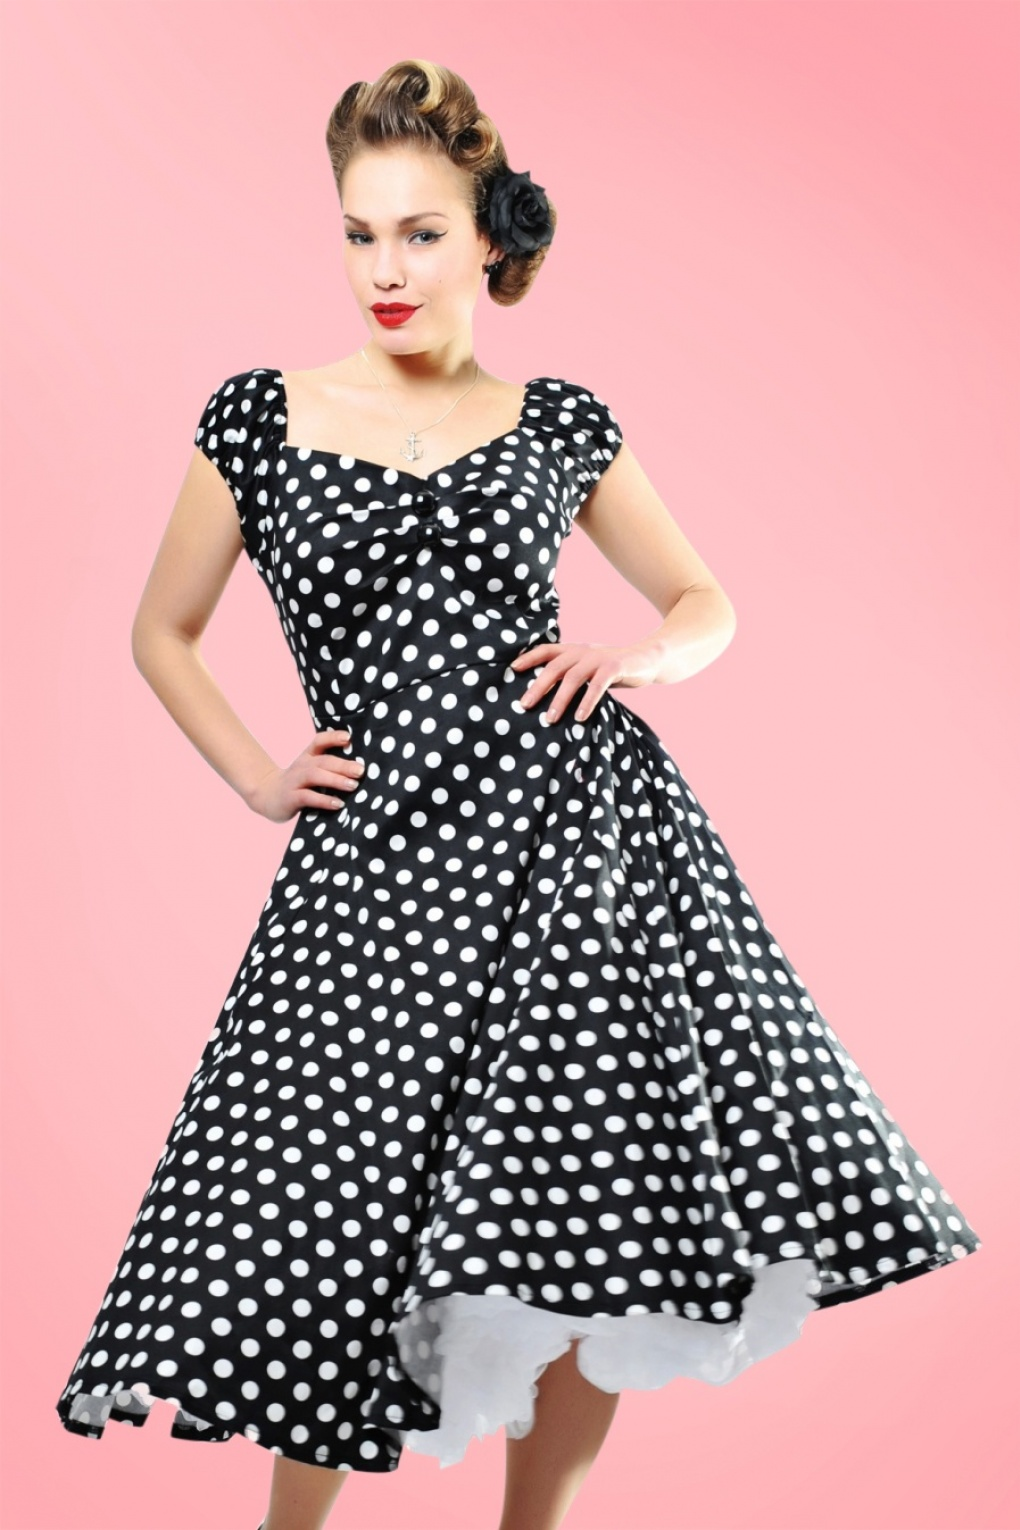 1940s Pinup Dresses for Sale 50s Dolores Doll dress Black White polka swing dress £31.72 AT vintagedancer.com